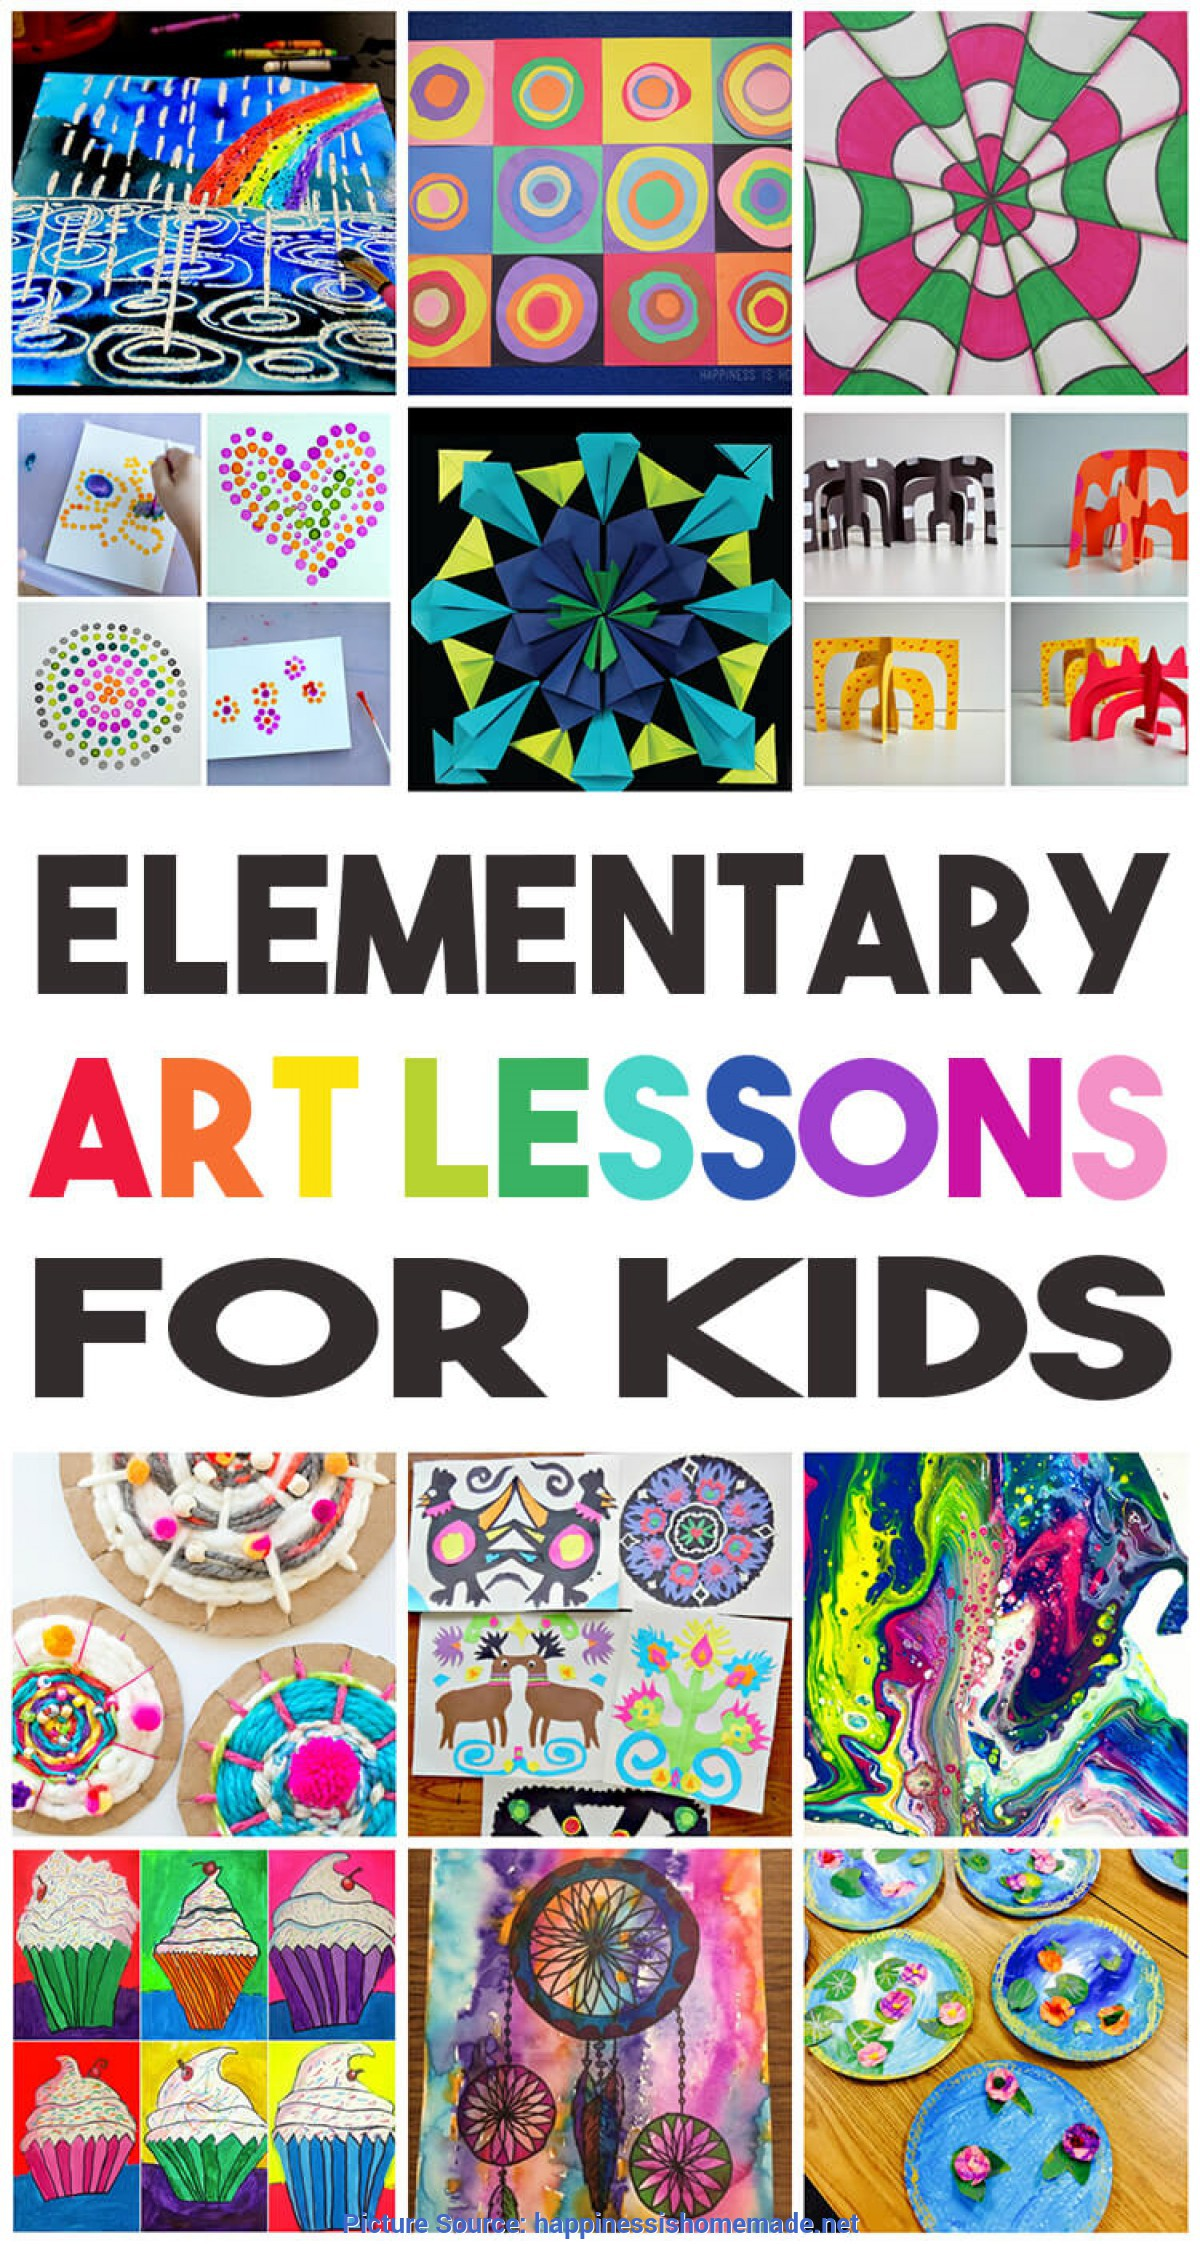 Excellent Elementary Art Ideas 36 Elementary Art Lessons For Kids - Happiness Is Home